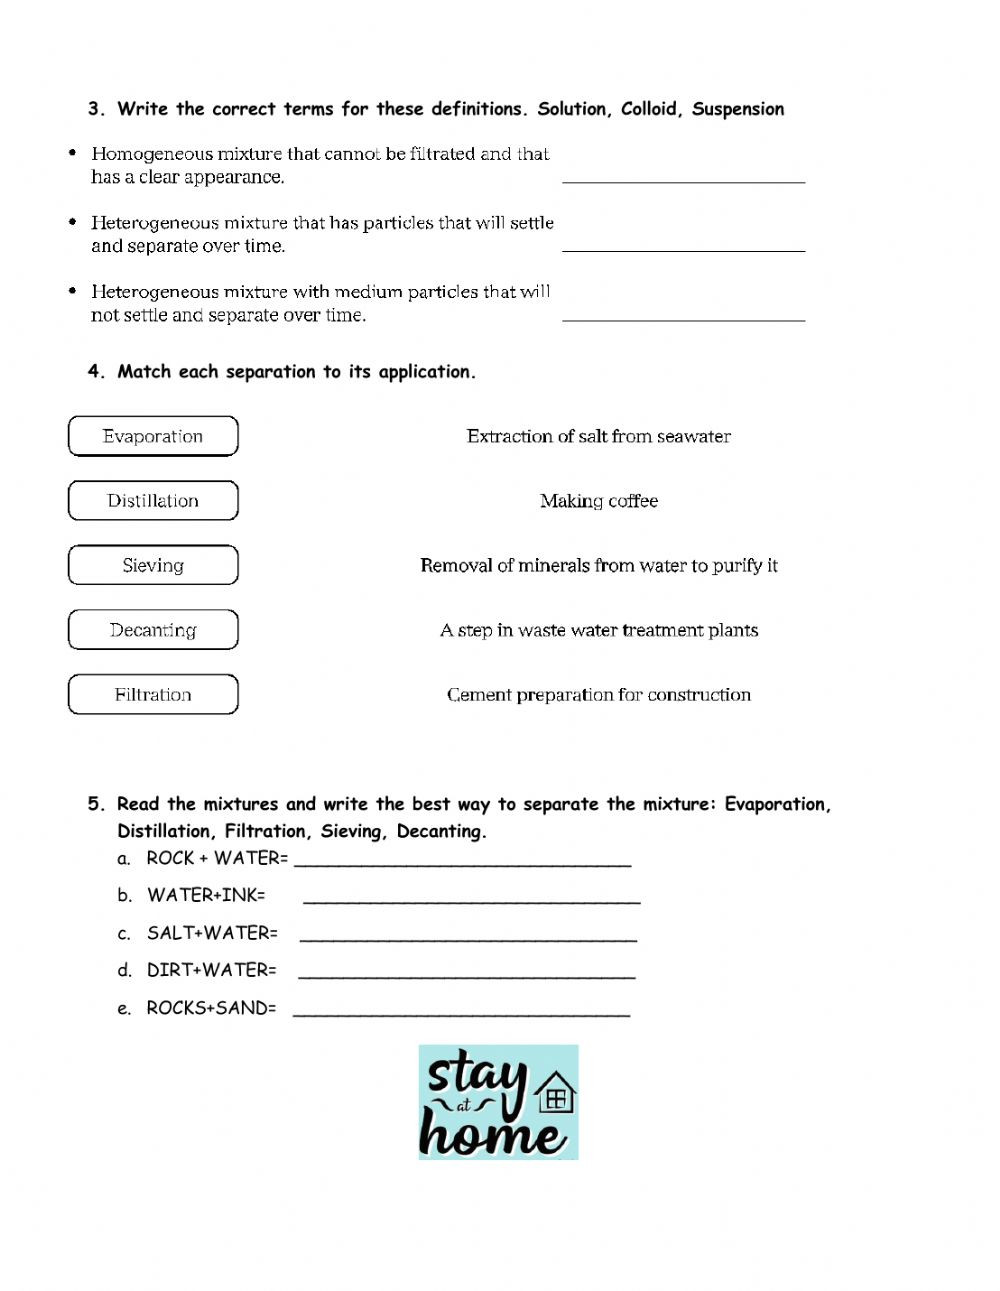 Solutions Colloids and Suspensions Worksheet Mixes and Separation Methods Interactive Worksheet